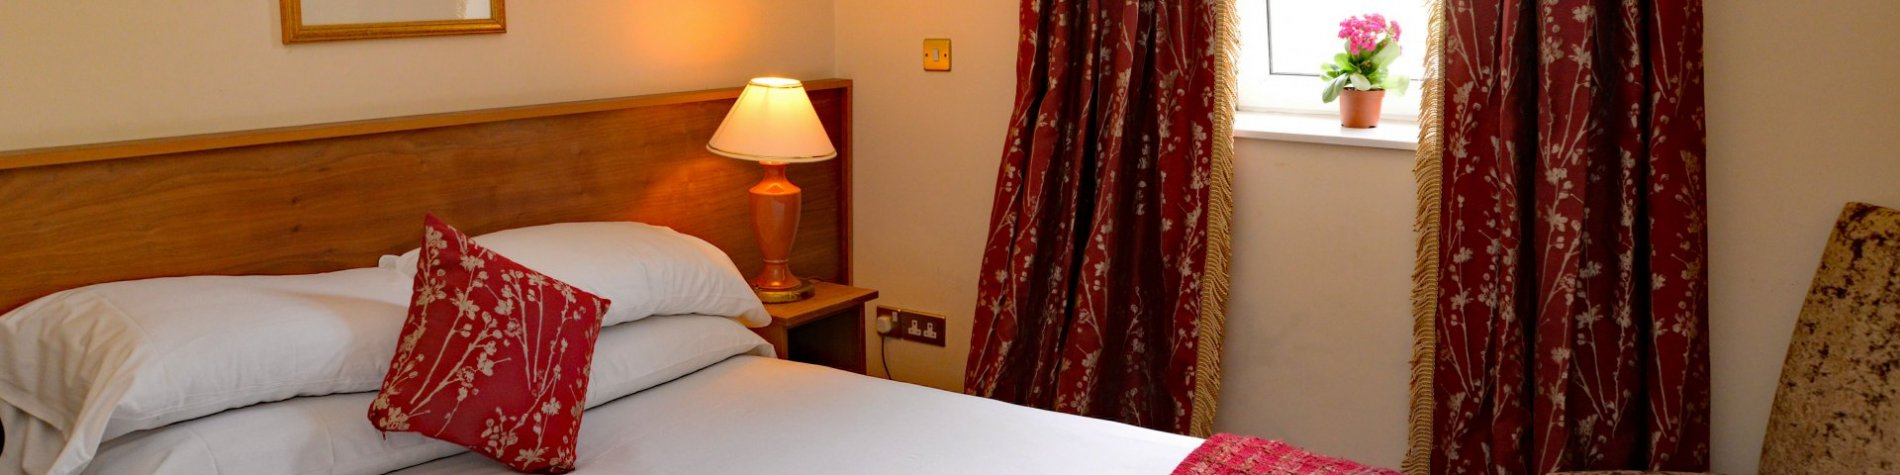 Gabriel House Budget Accommodation Cork Double Room